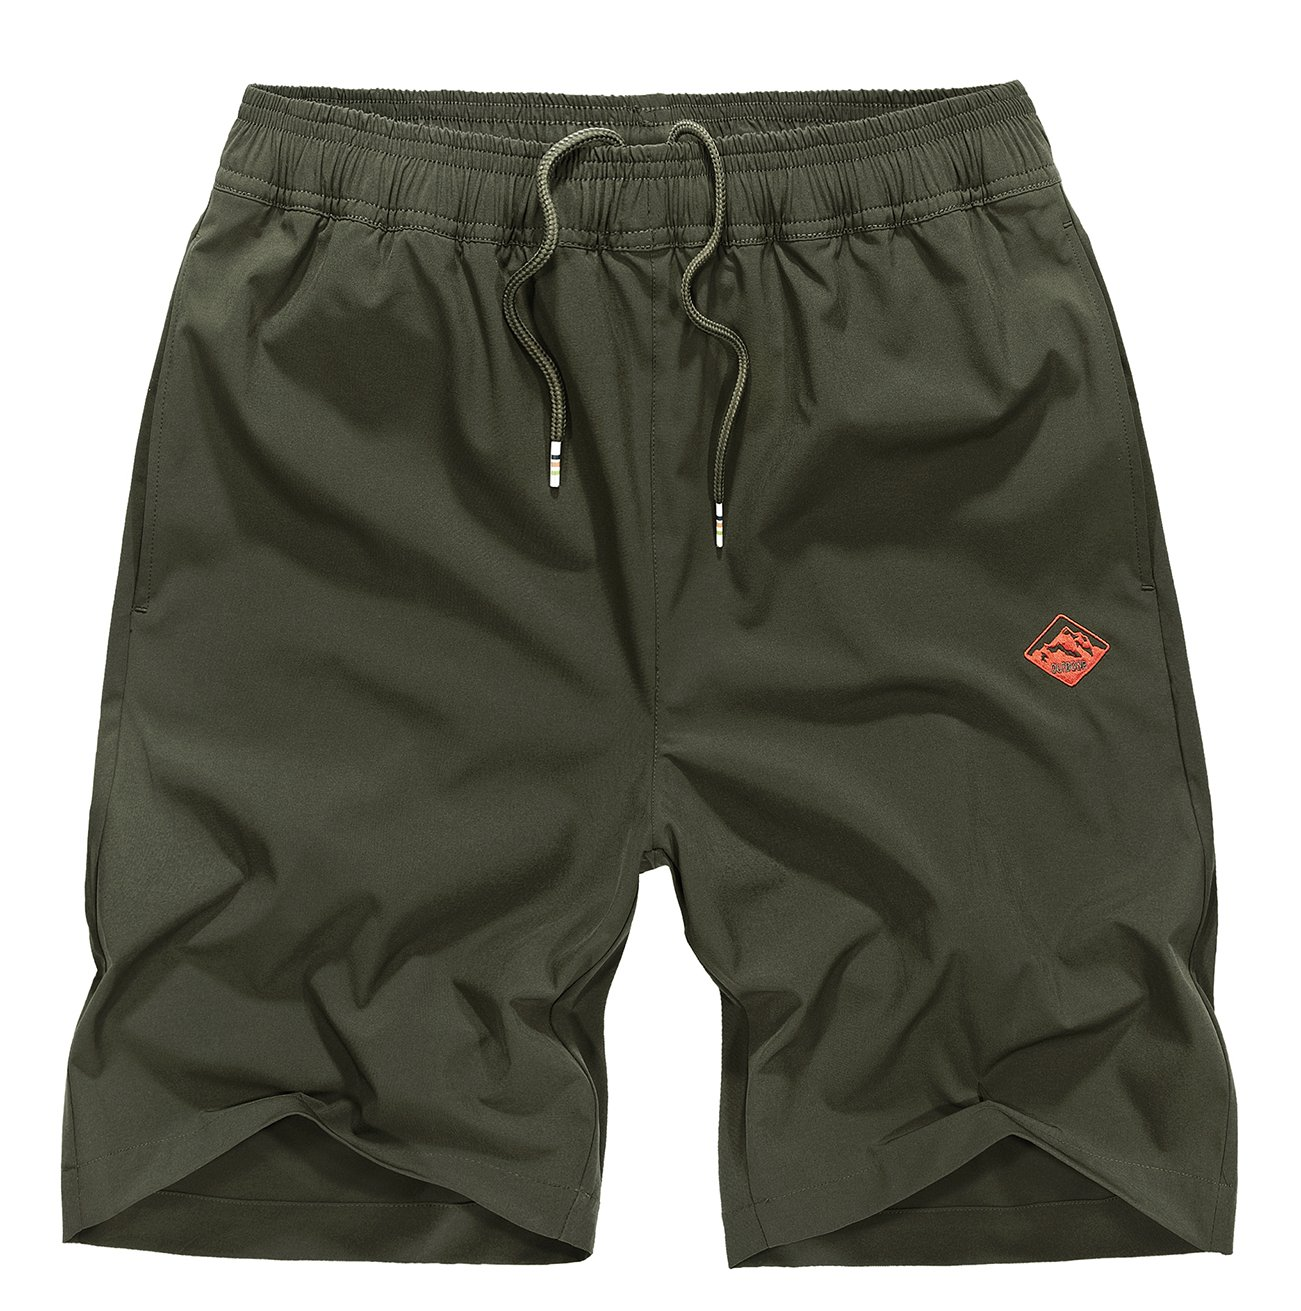 exeke Outdoor Men's Quick Dry Shorts Lightweight Hiking Shorts 252-Army Green/tag:3XL